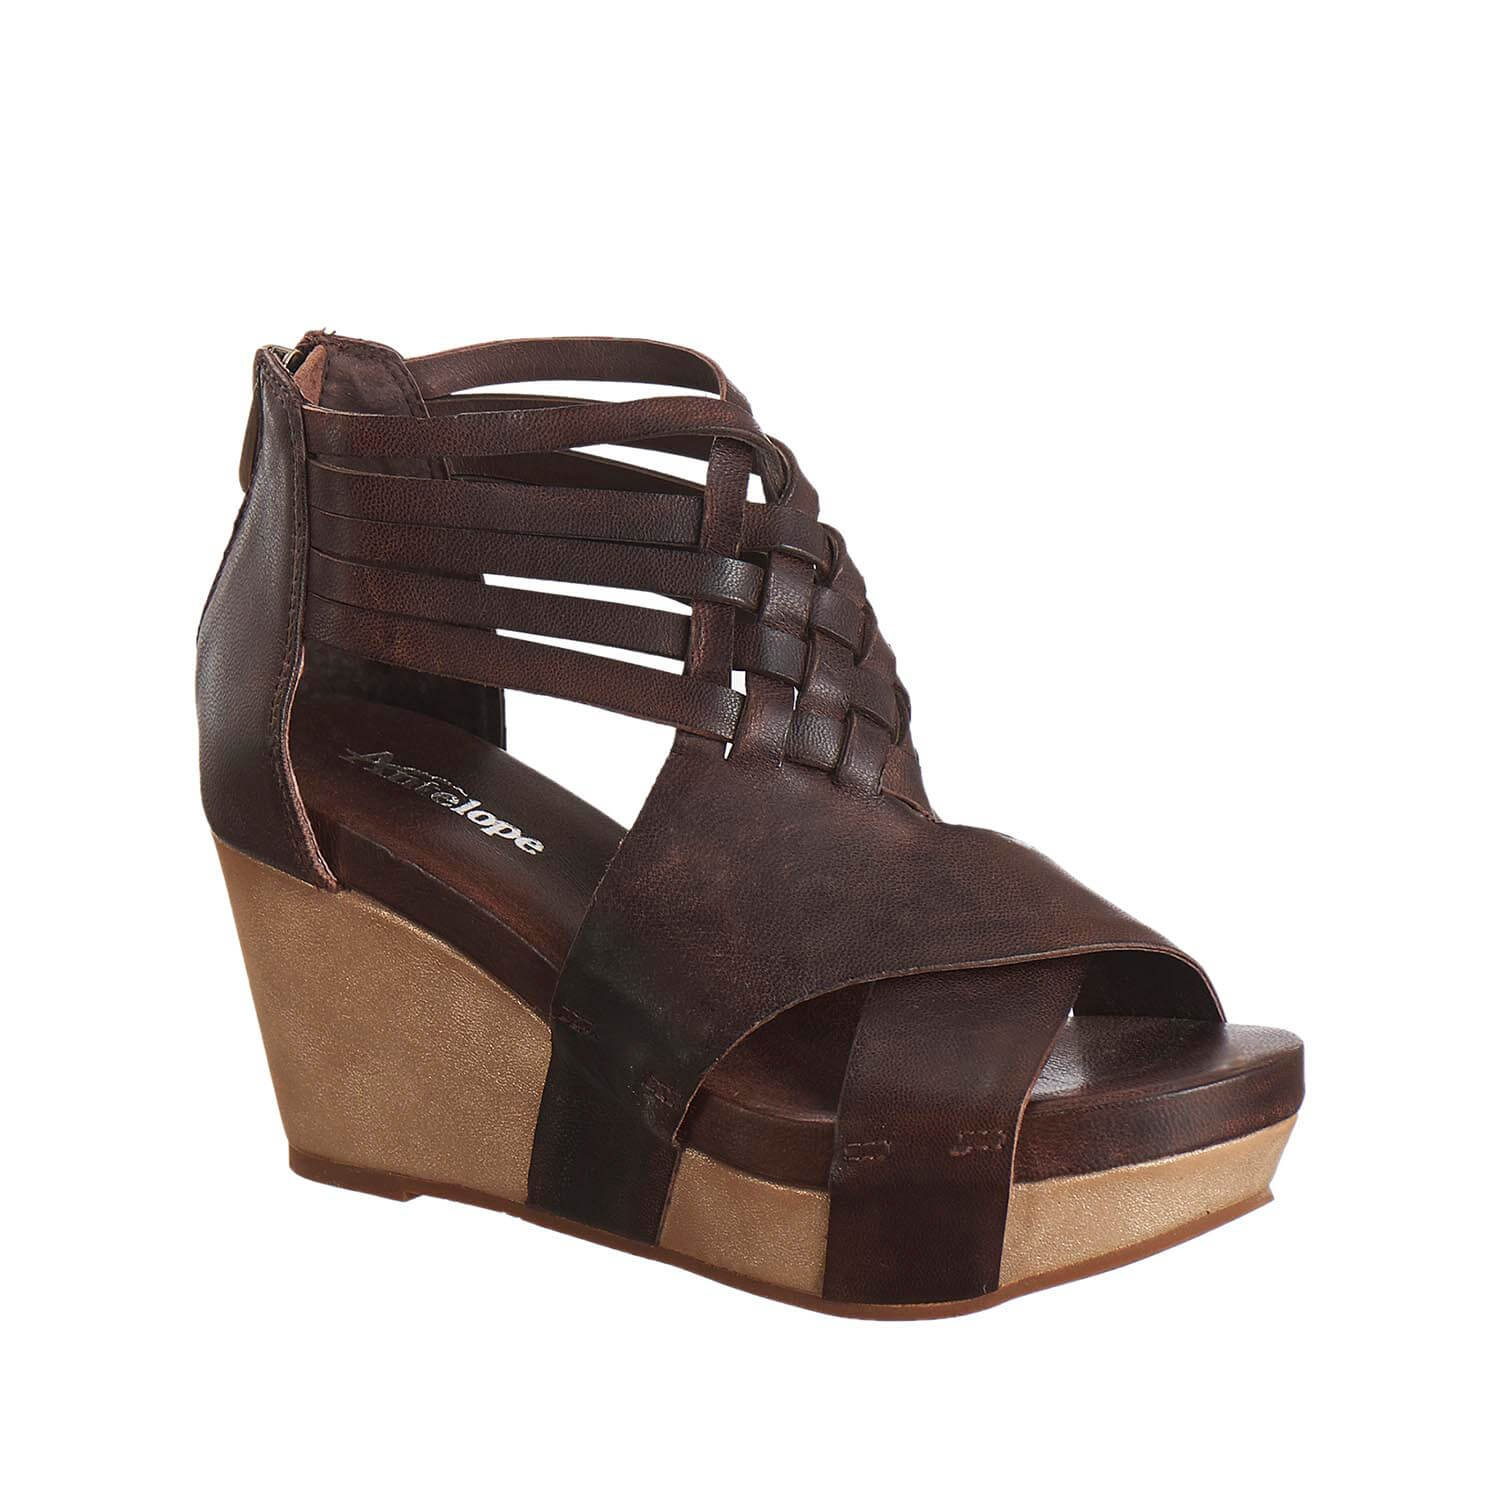 Antelope Women's 952 Coffee Leather Woven Ankle Band Sandals 39